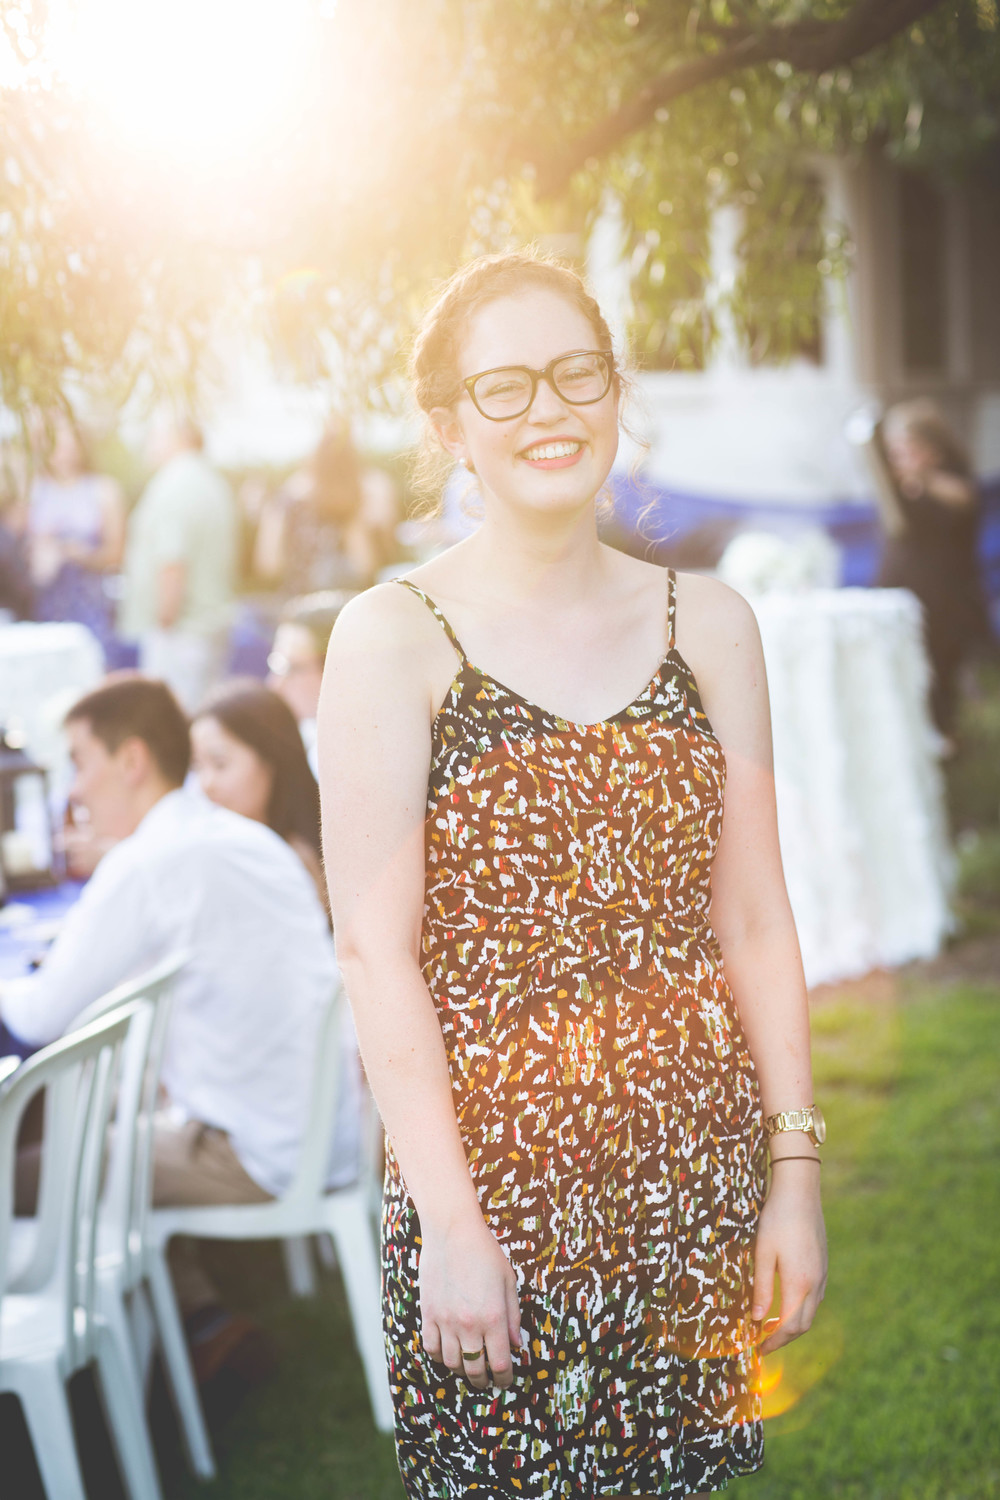 Lifestyle Wedding in Los Angeles with Kate Van Amringe Sunny Portrait